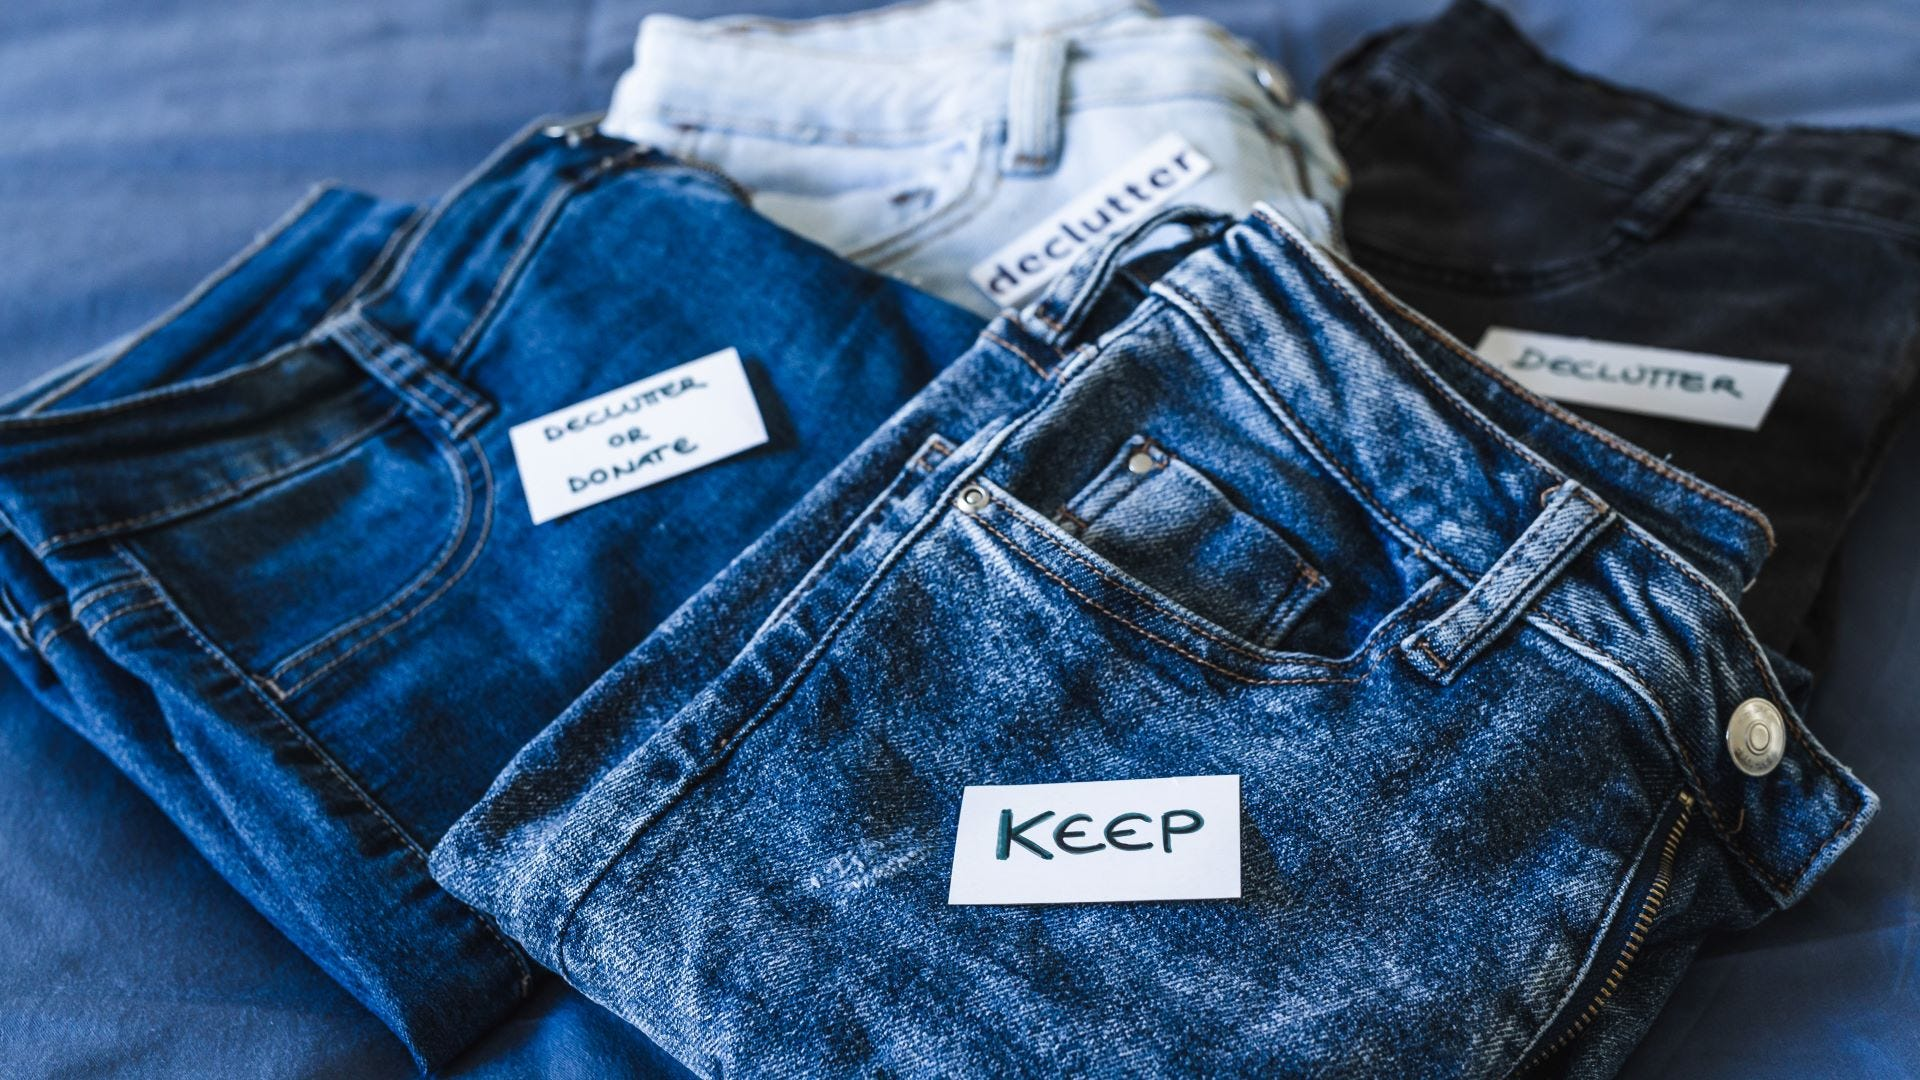 Four pairs of jeans labeled to be kept or donated